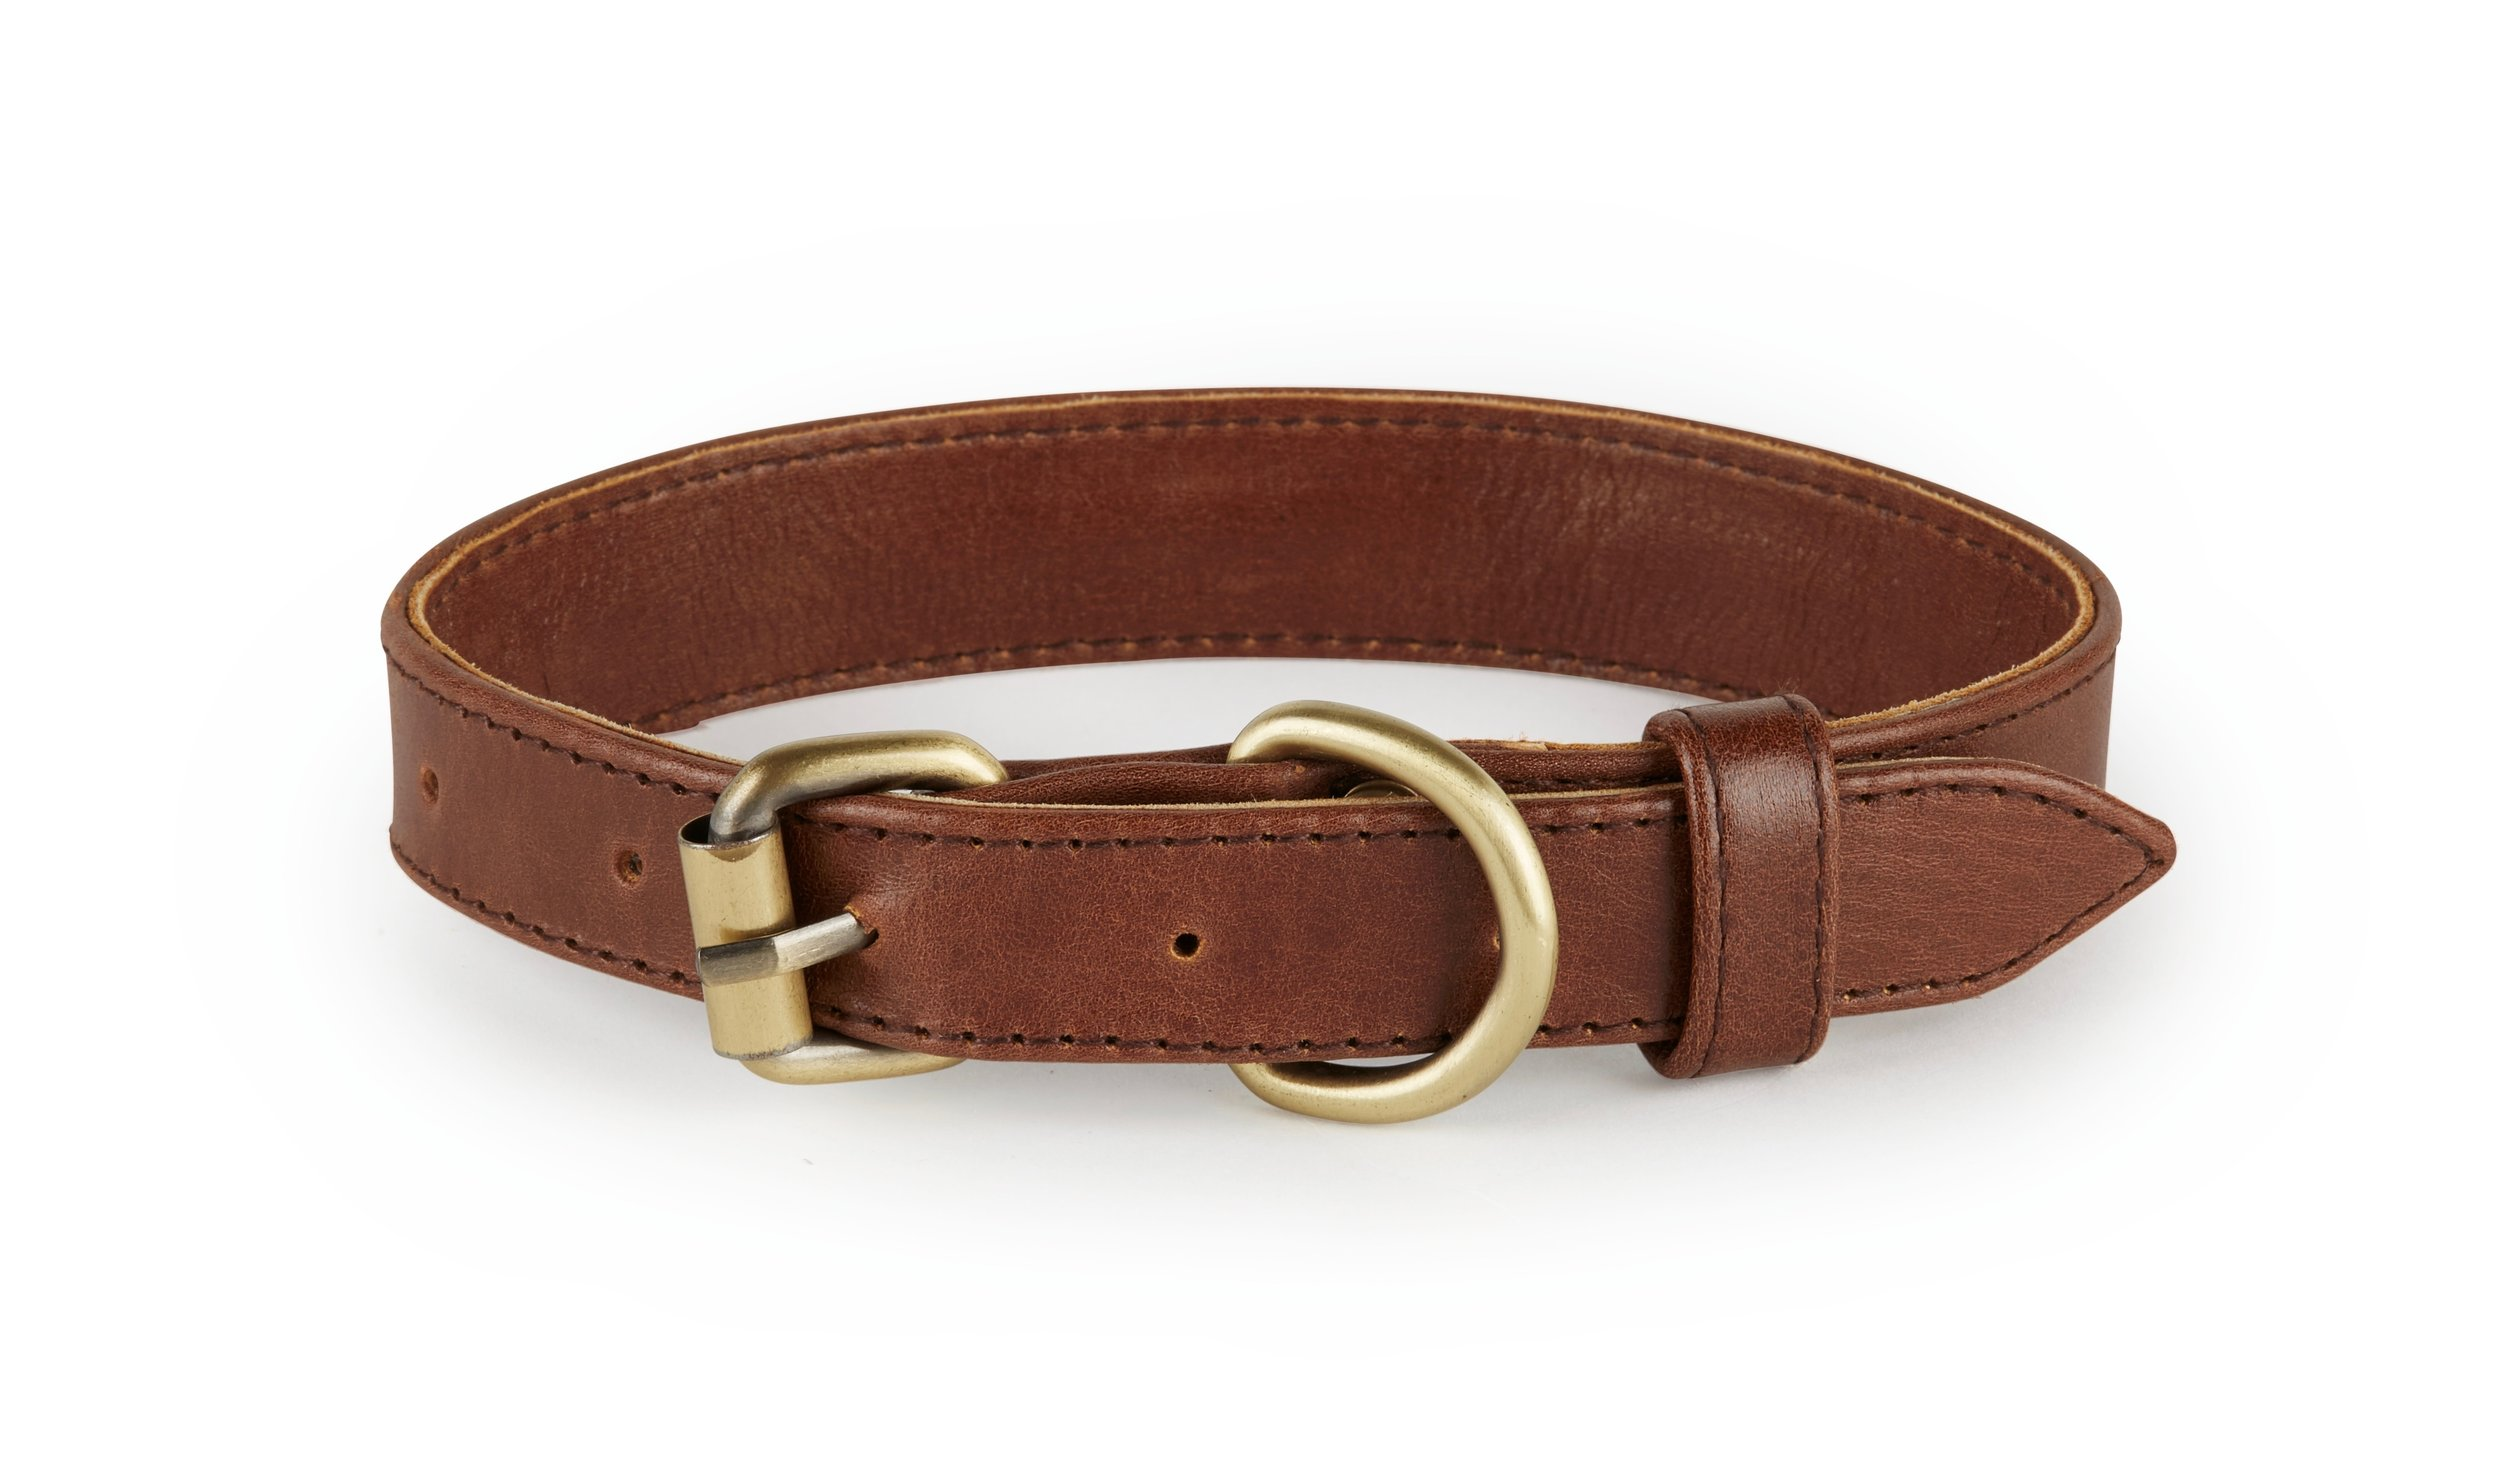 Santa Barbara - Italian Leather Dog Collar